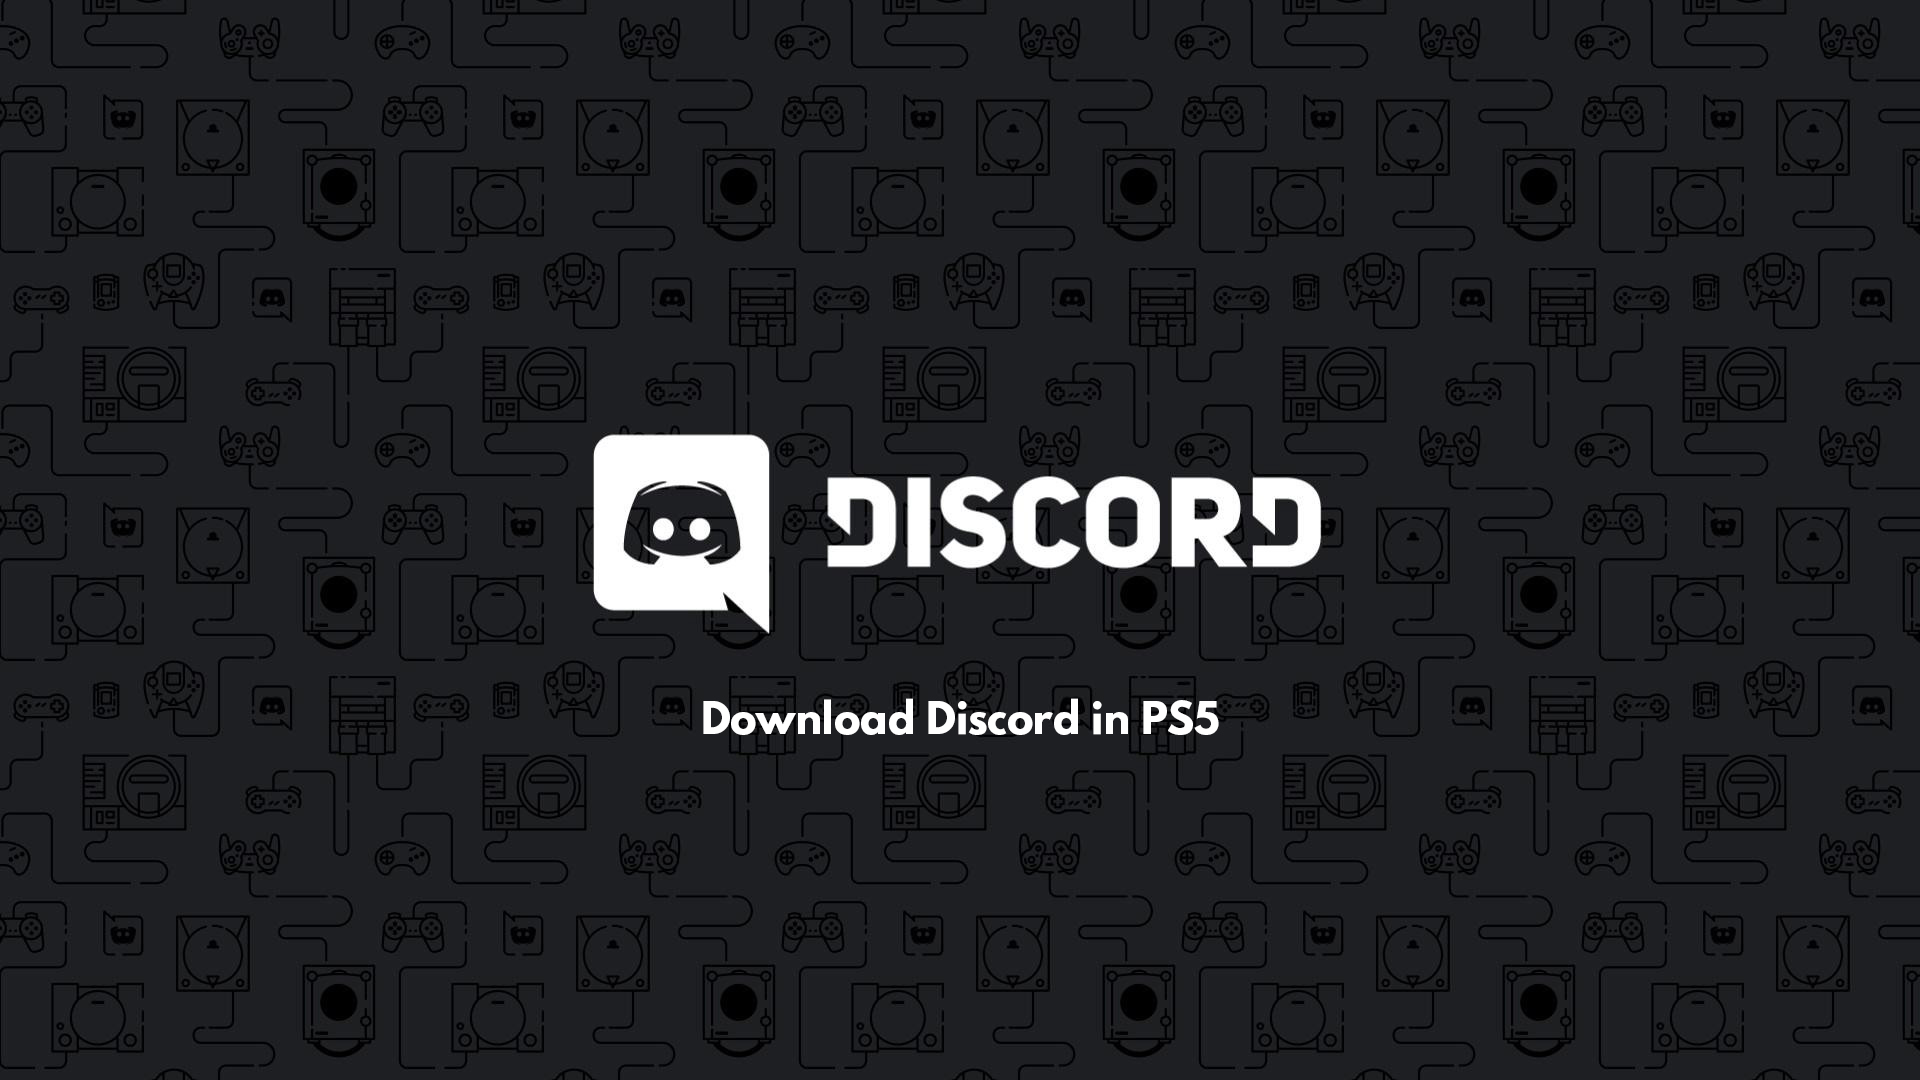 Download Discord in PS5 - How to Download Discord on PS5 - Installation Guide